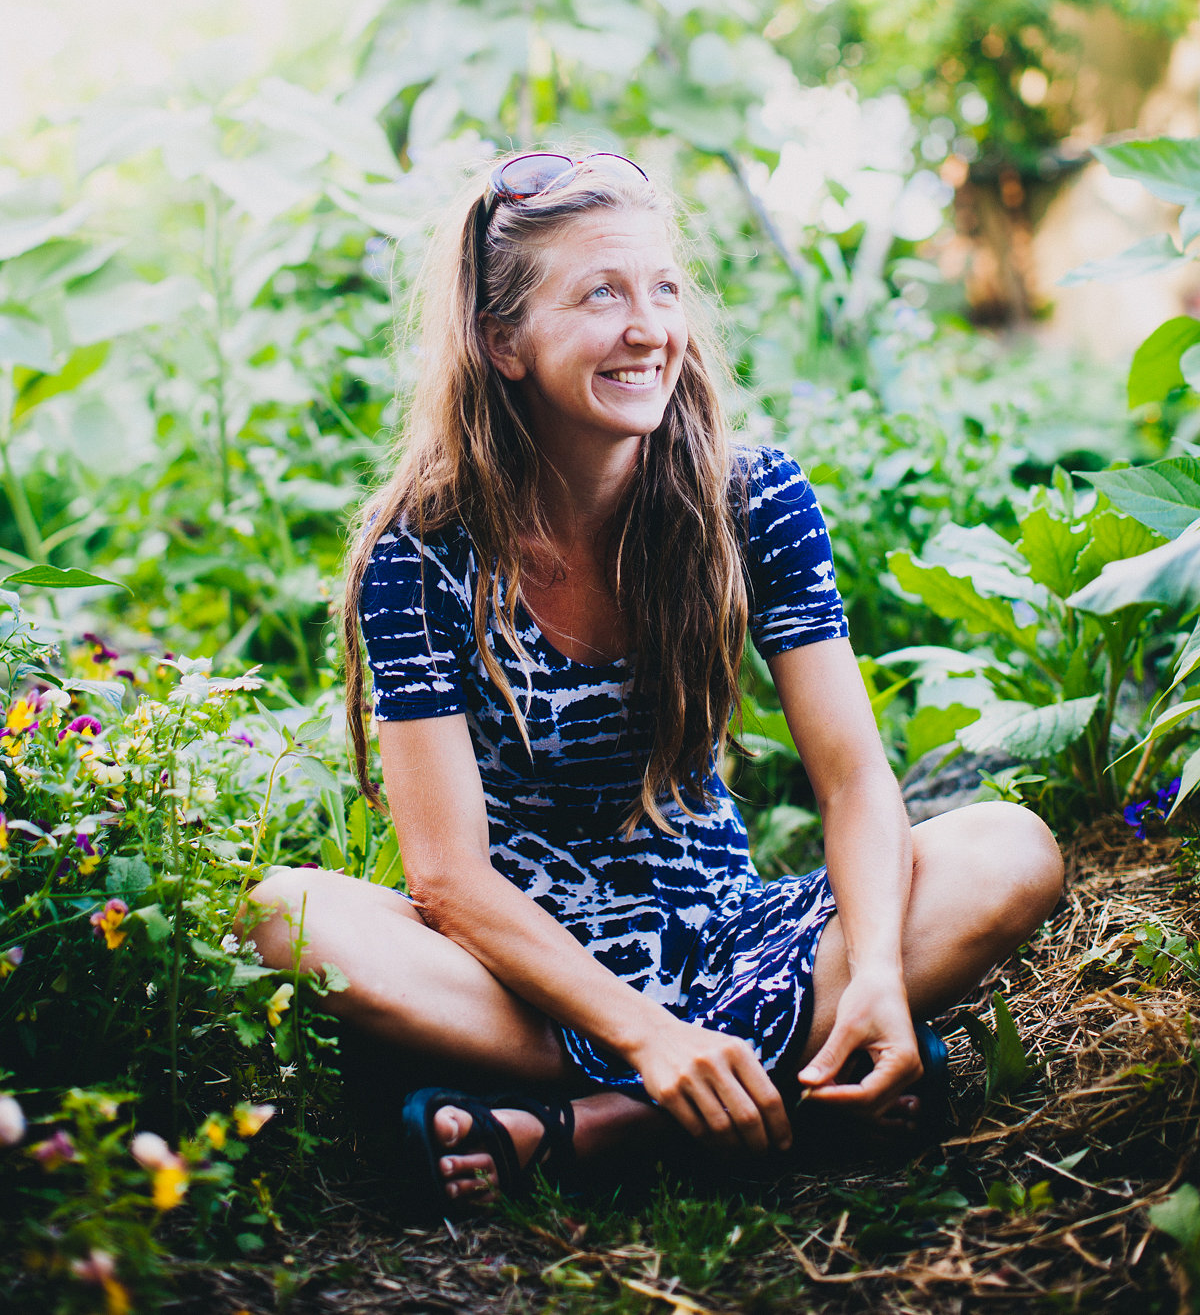 KobyJeschkeit-Hagen, Tiny DinerFarm Manager, Seed Sages Founder &  Permaculture Research Institute Cold Climate Teacher.